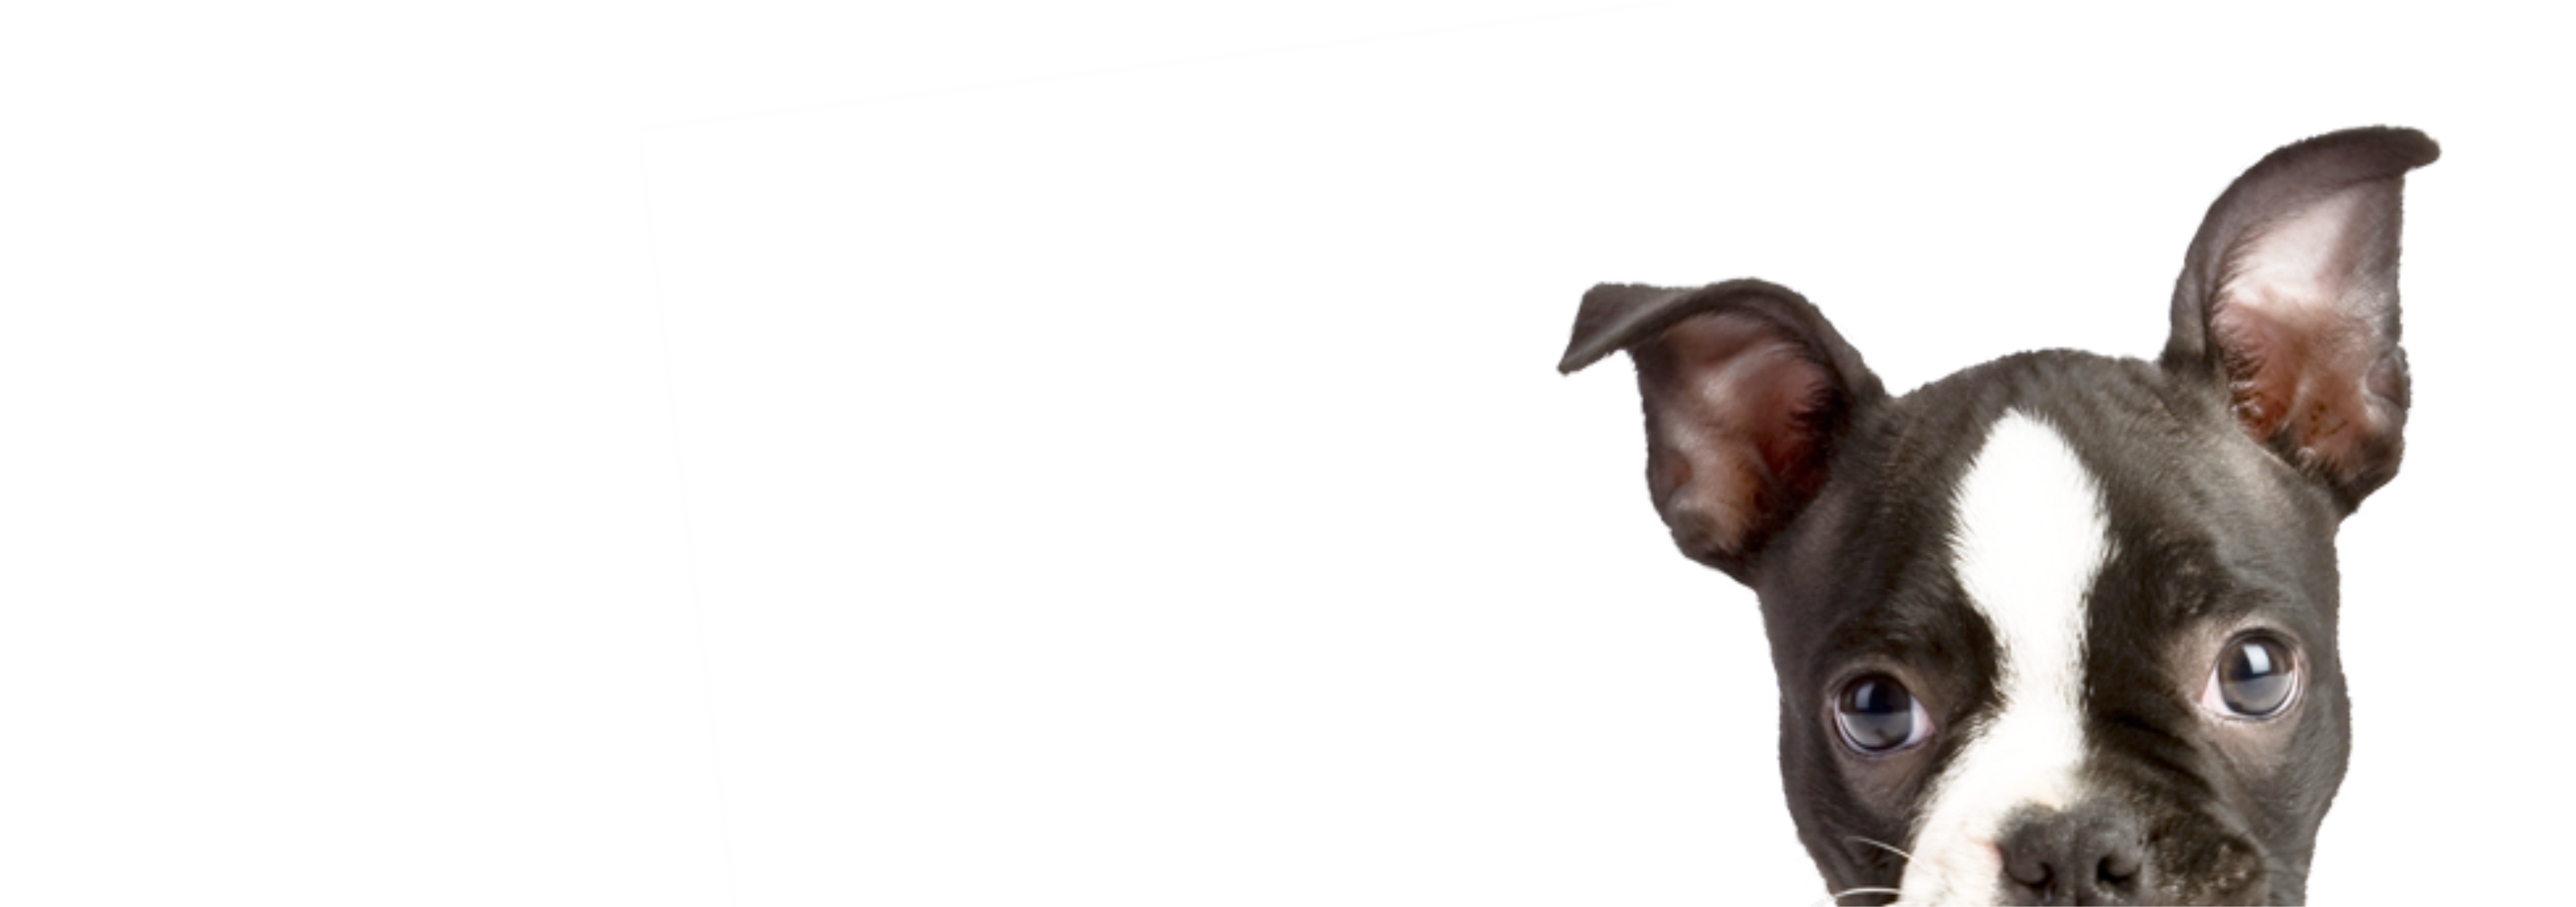 peeping puppy2.png